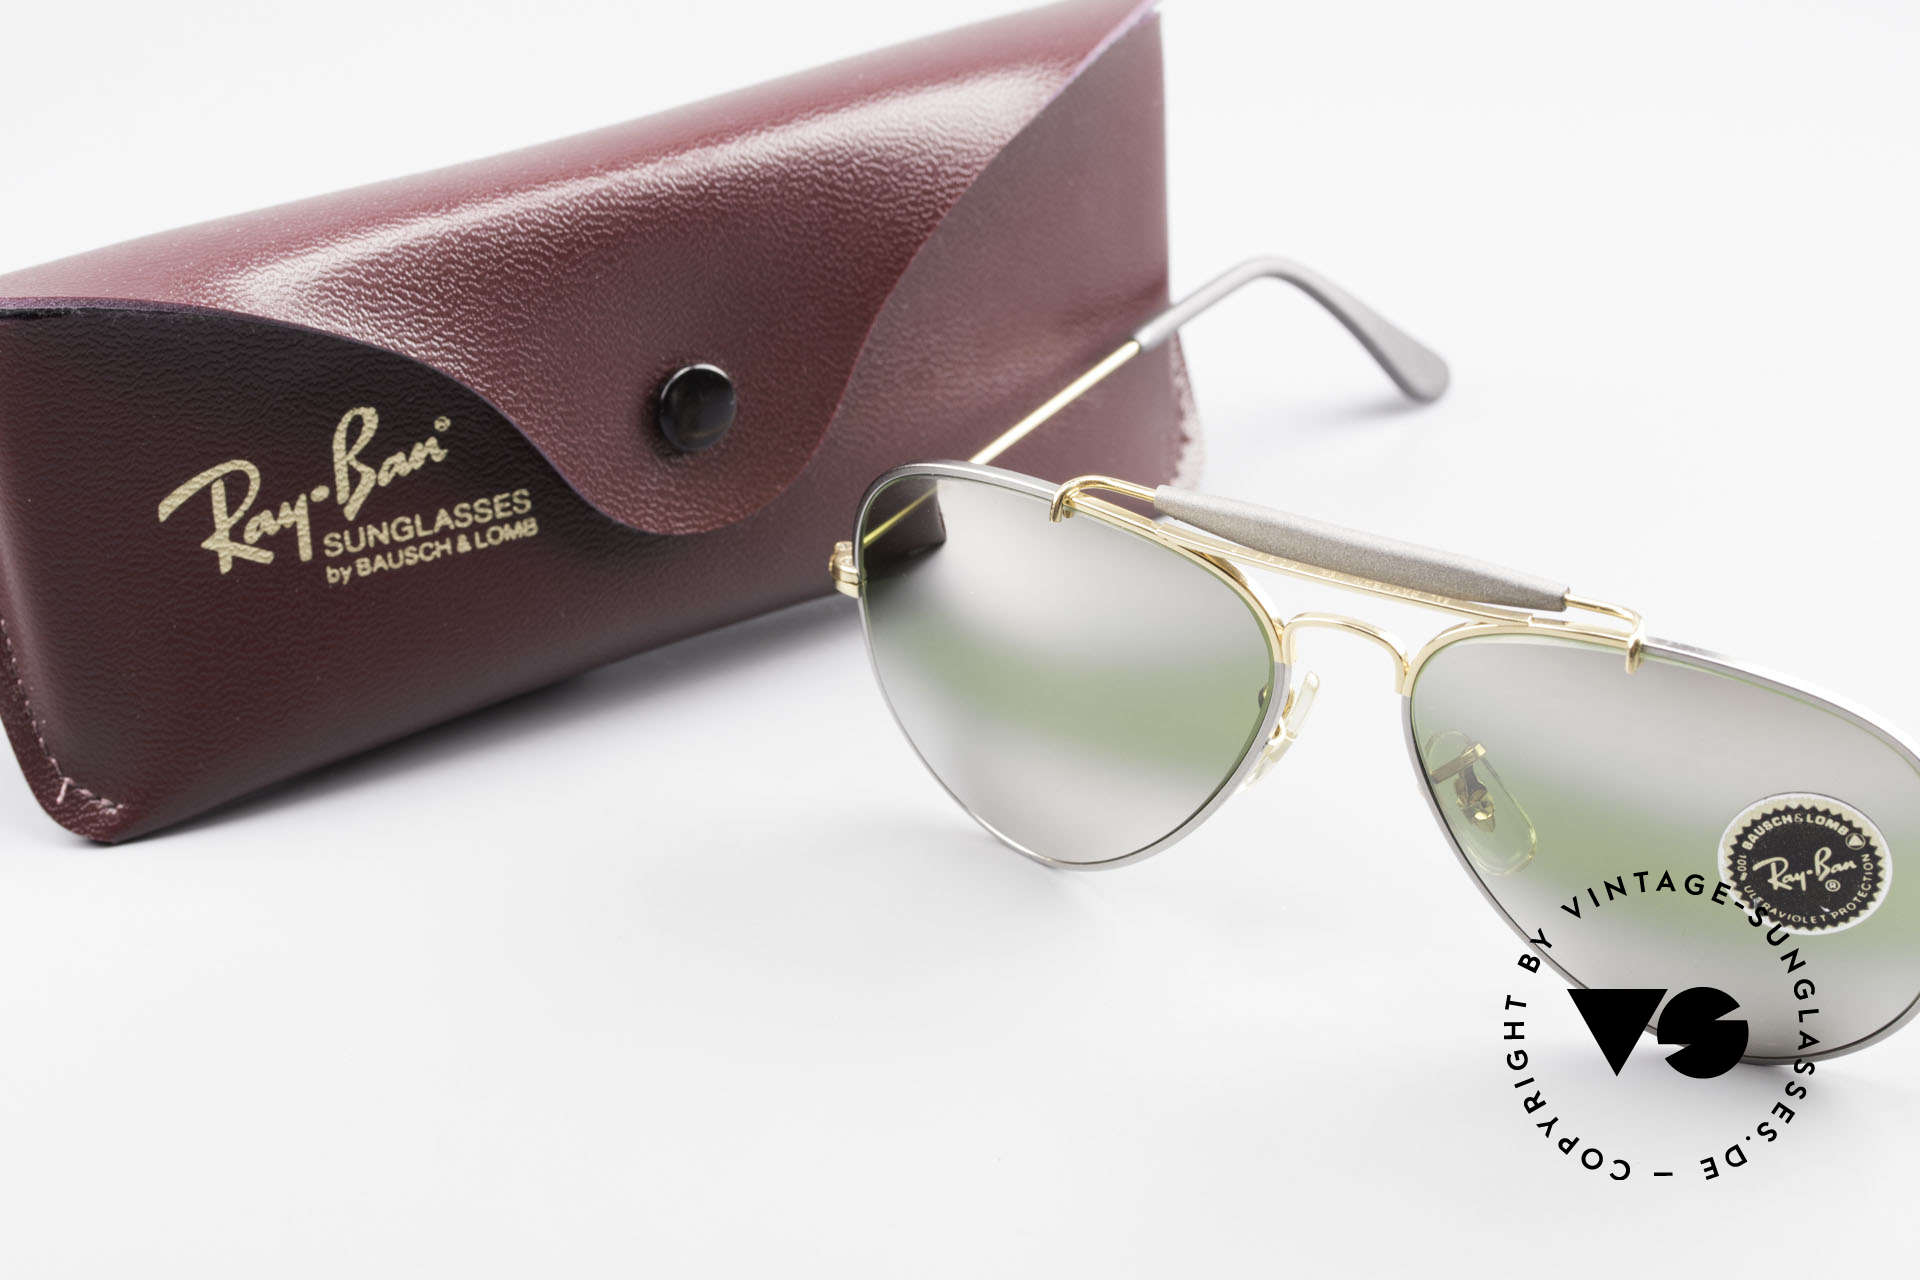 Ray Ban Outdoorsman Precious Greenish Mirrored, Size: medium, Made for Men and Women